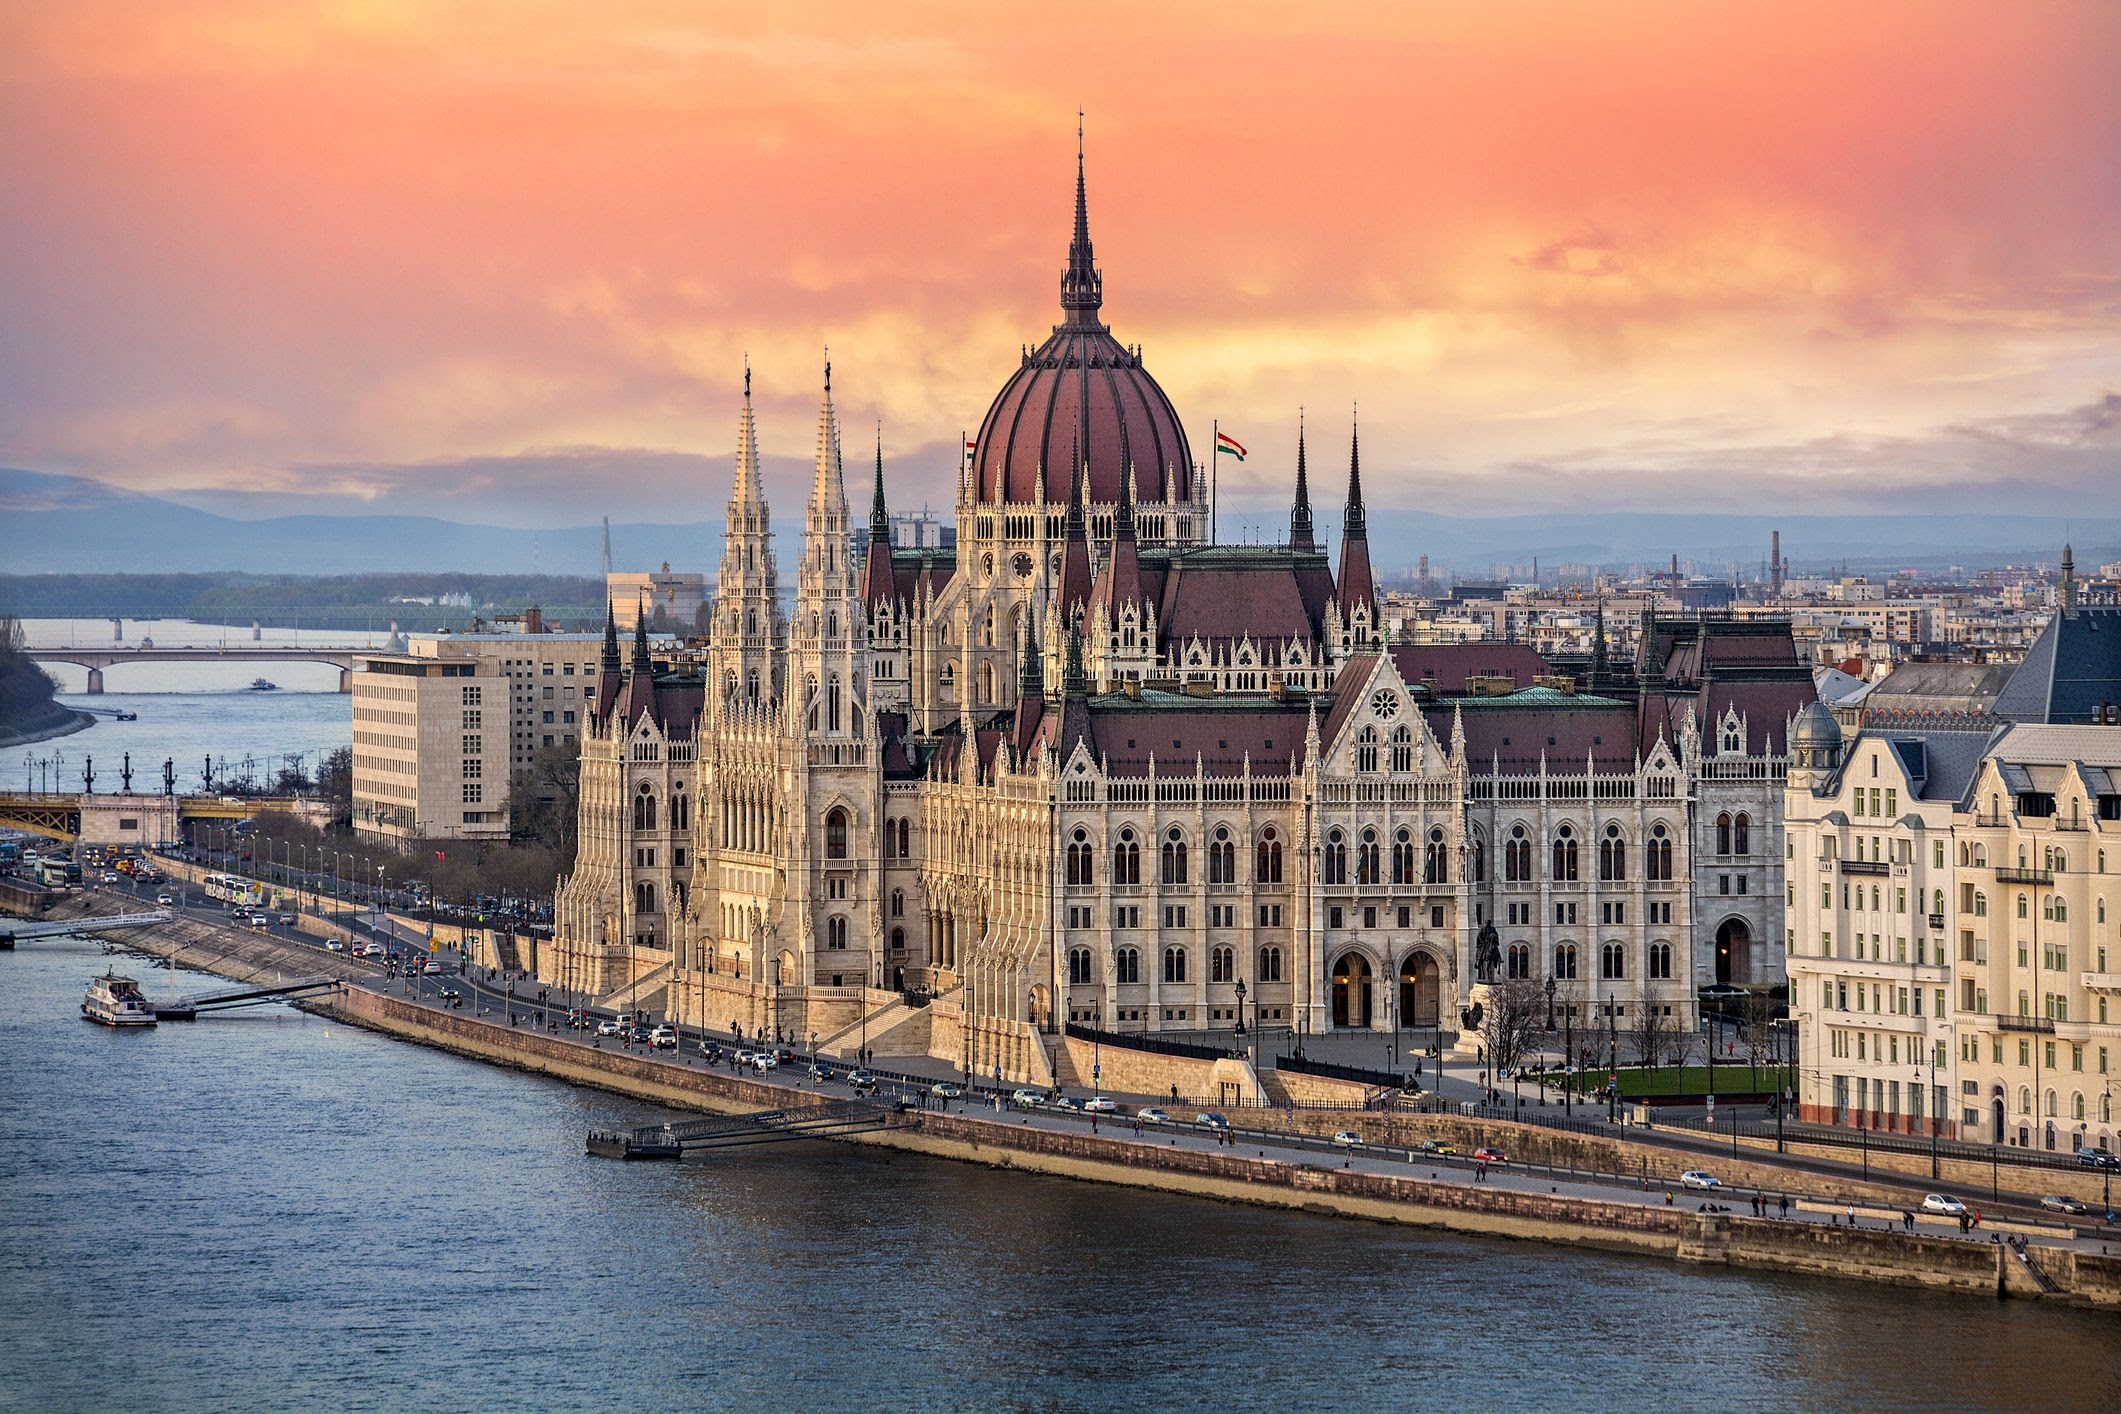 https://campaign-image.com/zohocampaigns/427042000023829006_zc_v8_the_hungarian_parliament_on_the_danube_river_at_sunset_in_budapest__hungary_945207010_23afbc9012d54bc4bb7c8a1f8c90075b.jpg